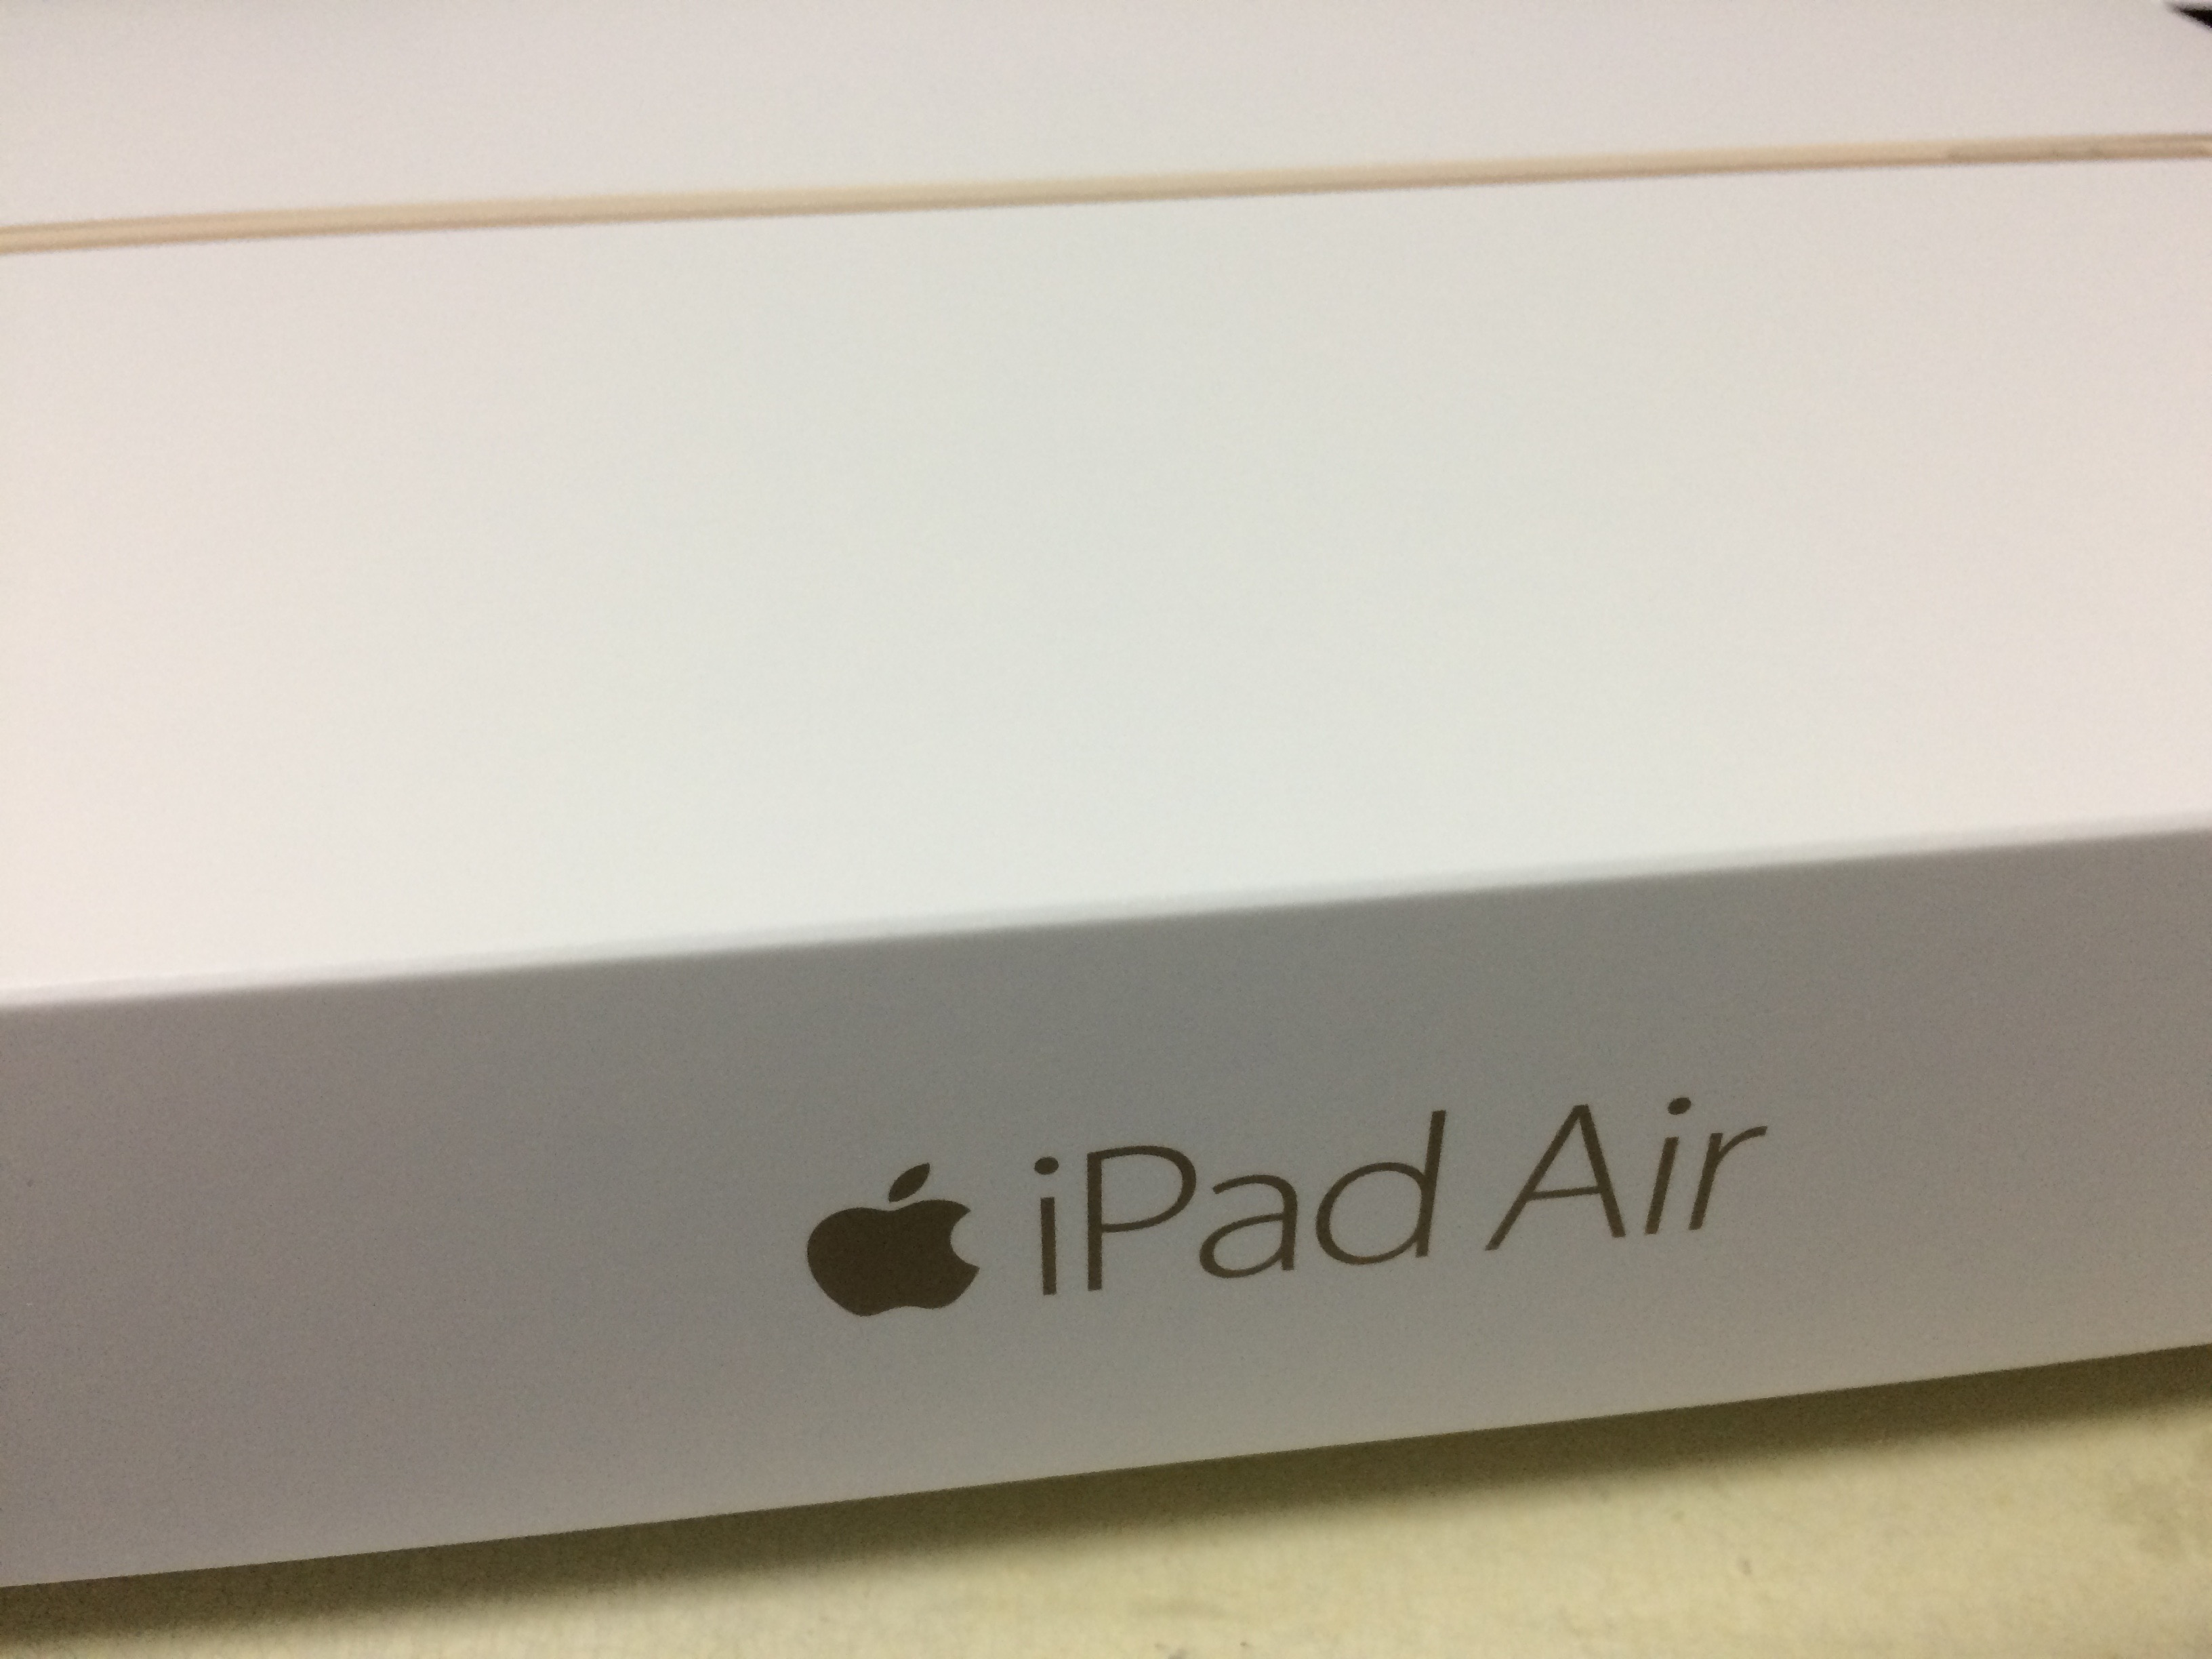 Apple iPad Air2 (64GB)が届いた!!